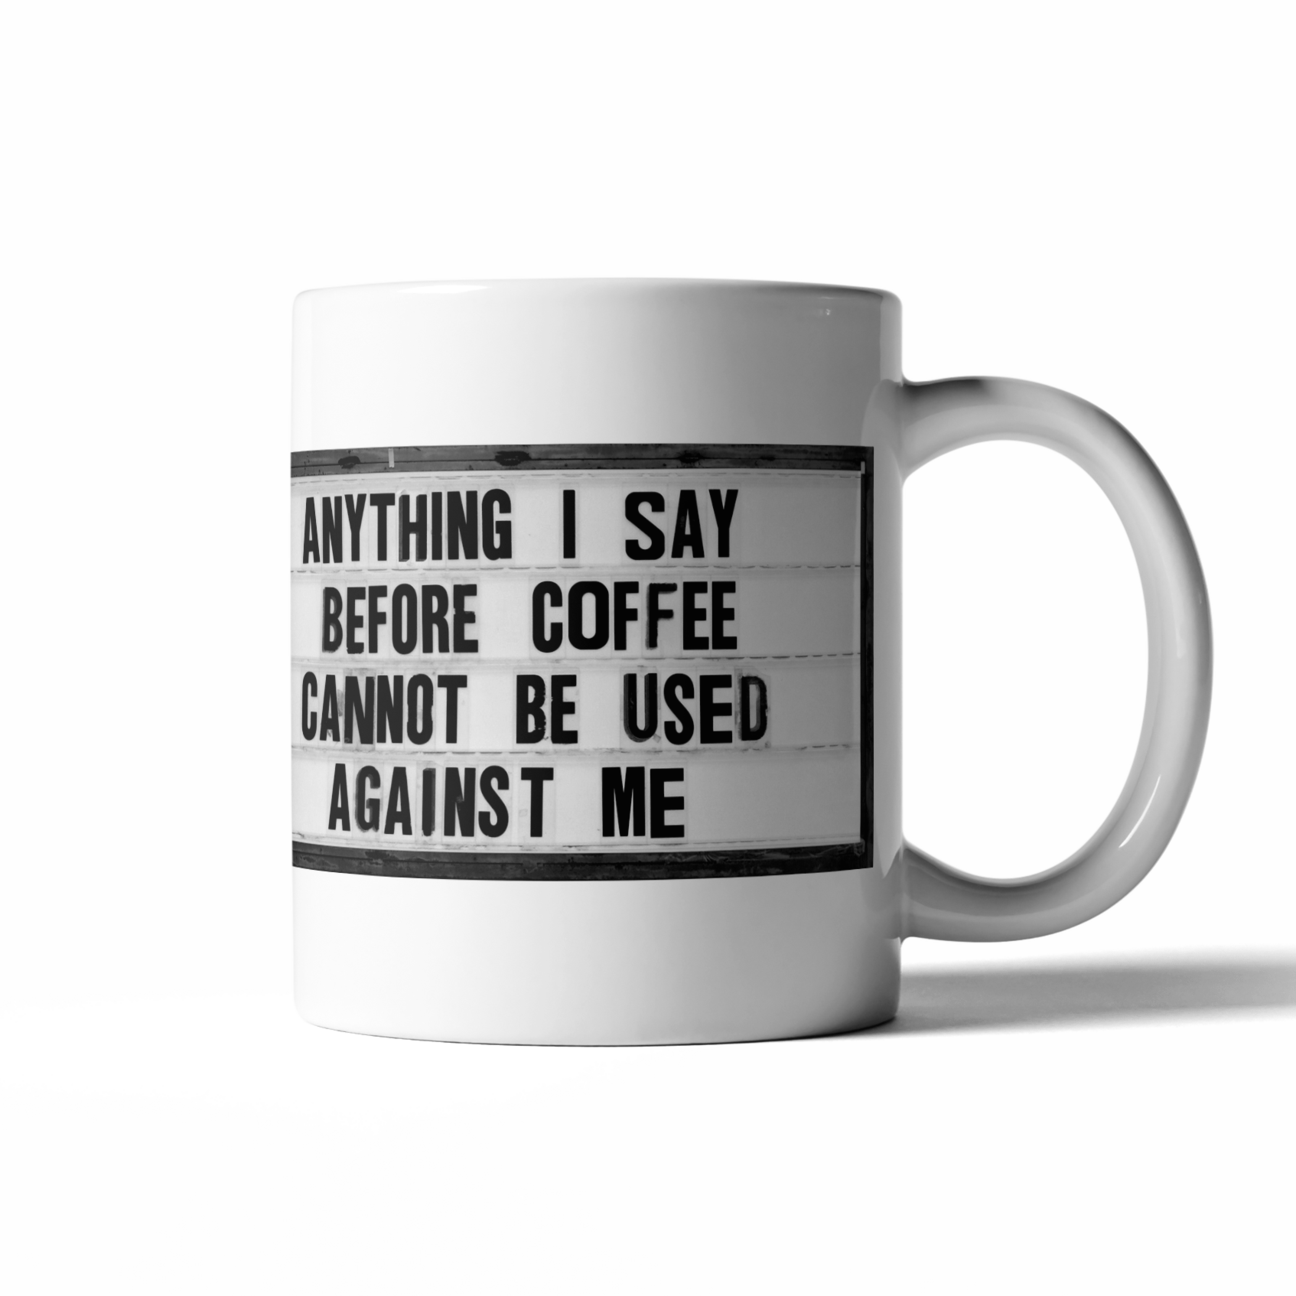 Anything I say before coffee cannot be used against me. Start your day with a little fun with these perfectly sized 16 oz coffee mugs.   16 oz  microwave and dishwasher safe